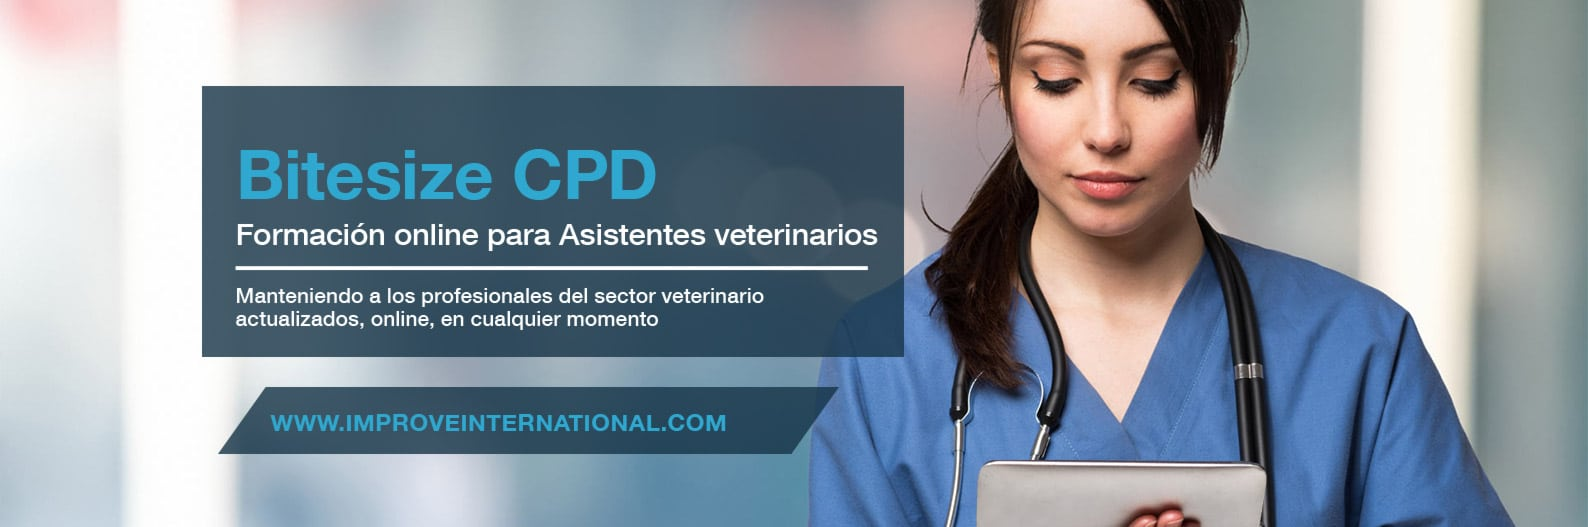 Formación online para Asistentes veterinarios con Improve International